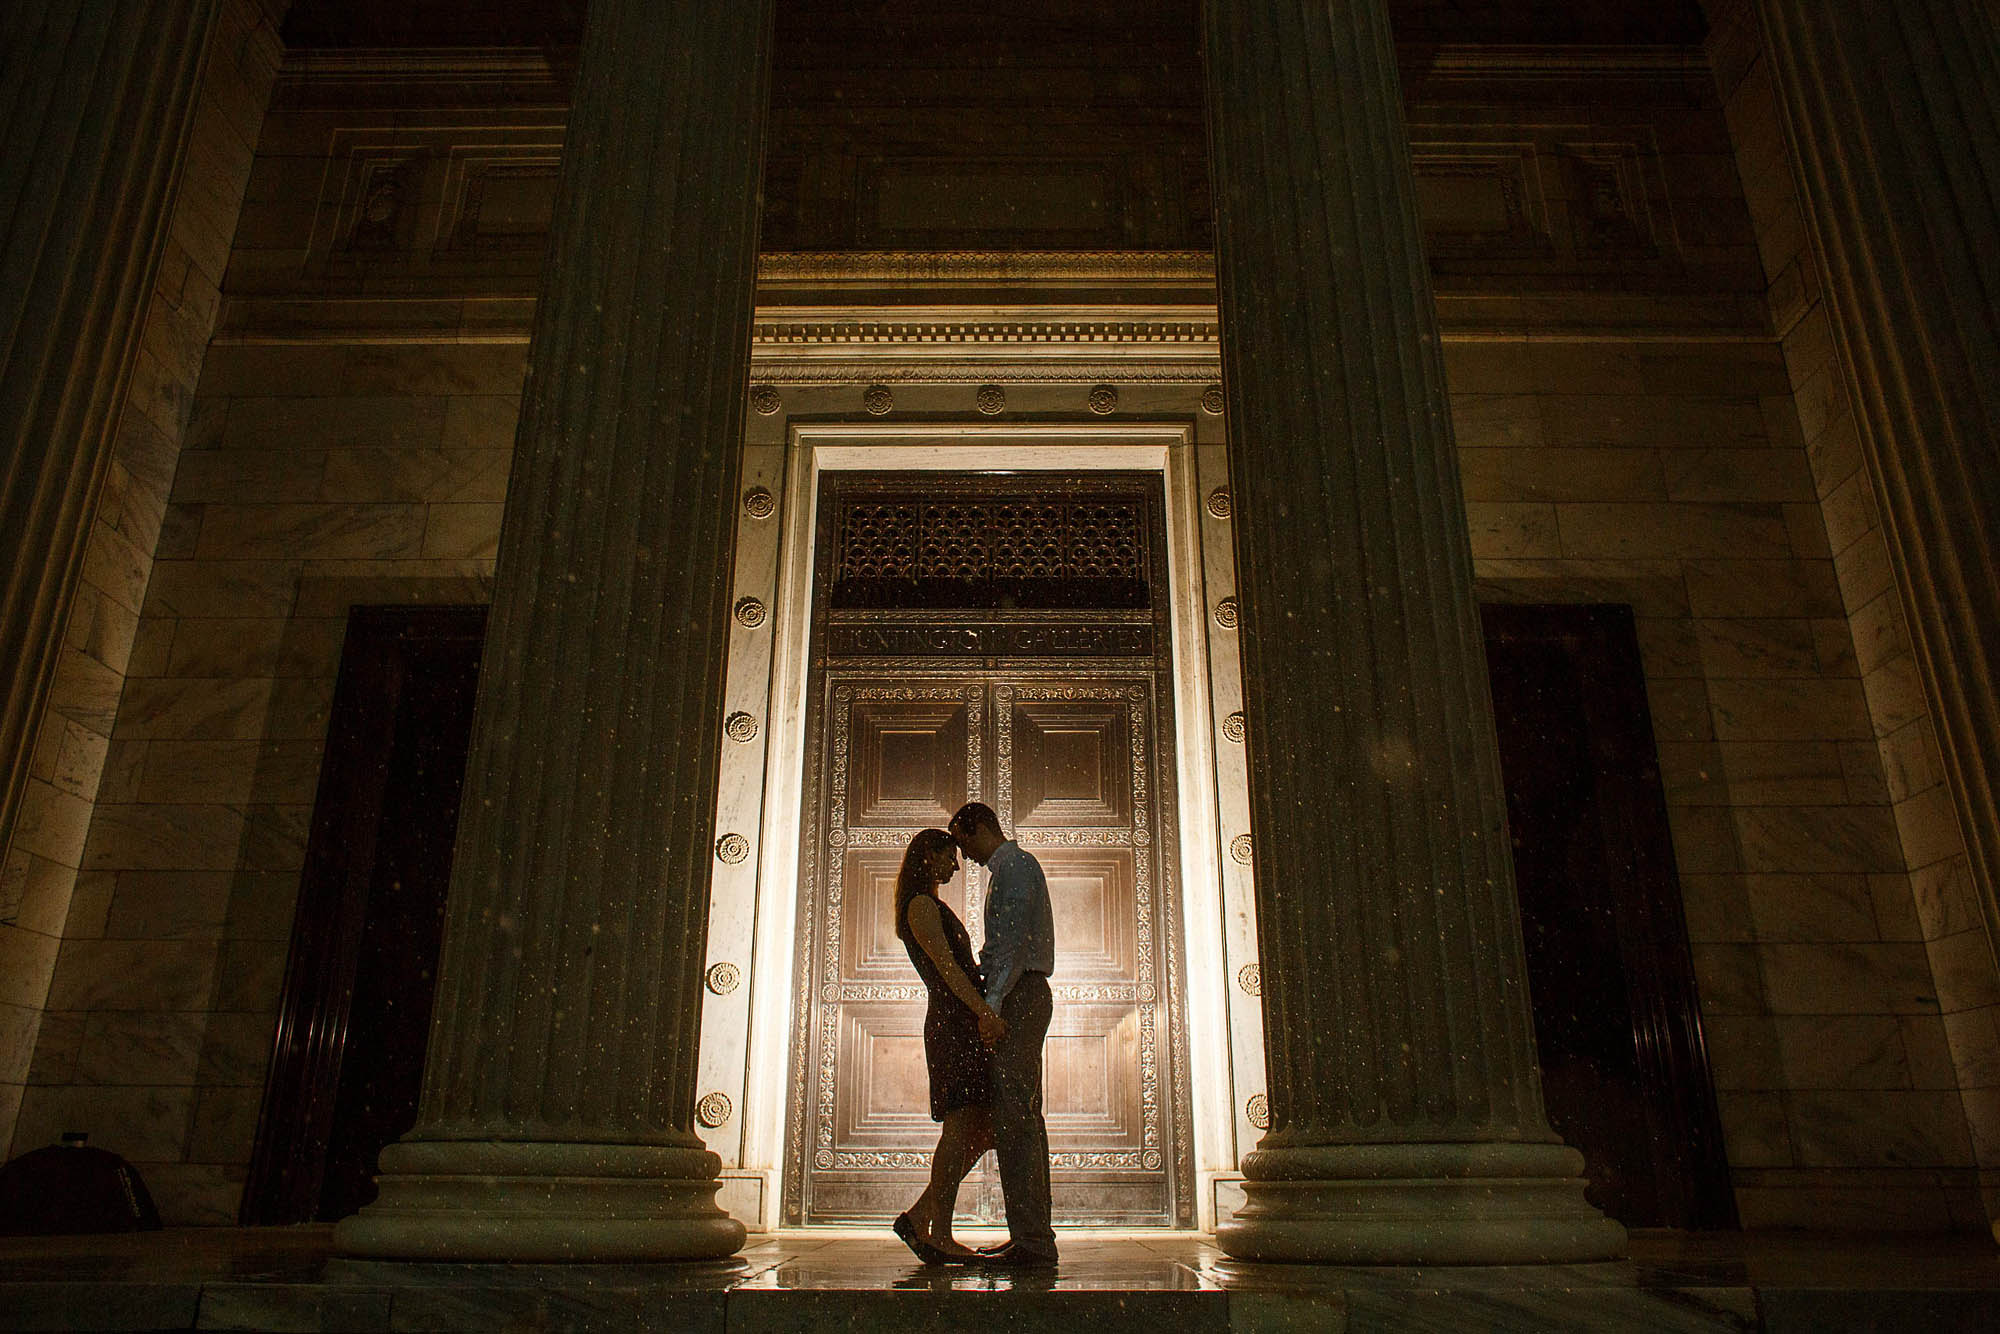 An engaged couple stand with their foreheads together in the doorway of the Cleveland Art Museum at night where the doorframe is light up and the couple is silhouetted against it.